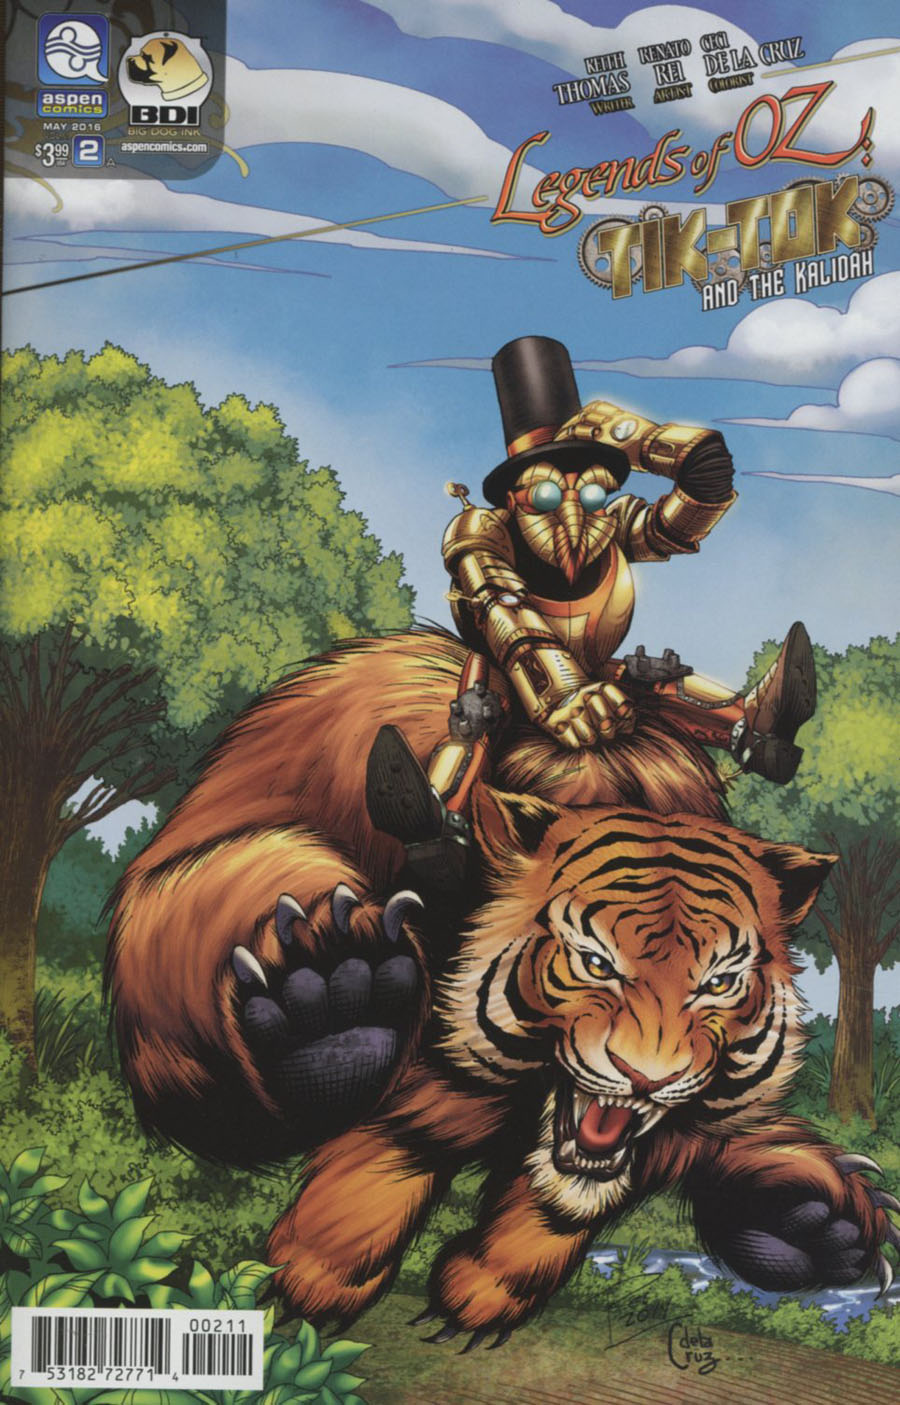 Legends Of Oz Tik-Tok And The Kalidah #2 Cover A Regular Renato Rei Cover